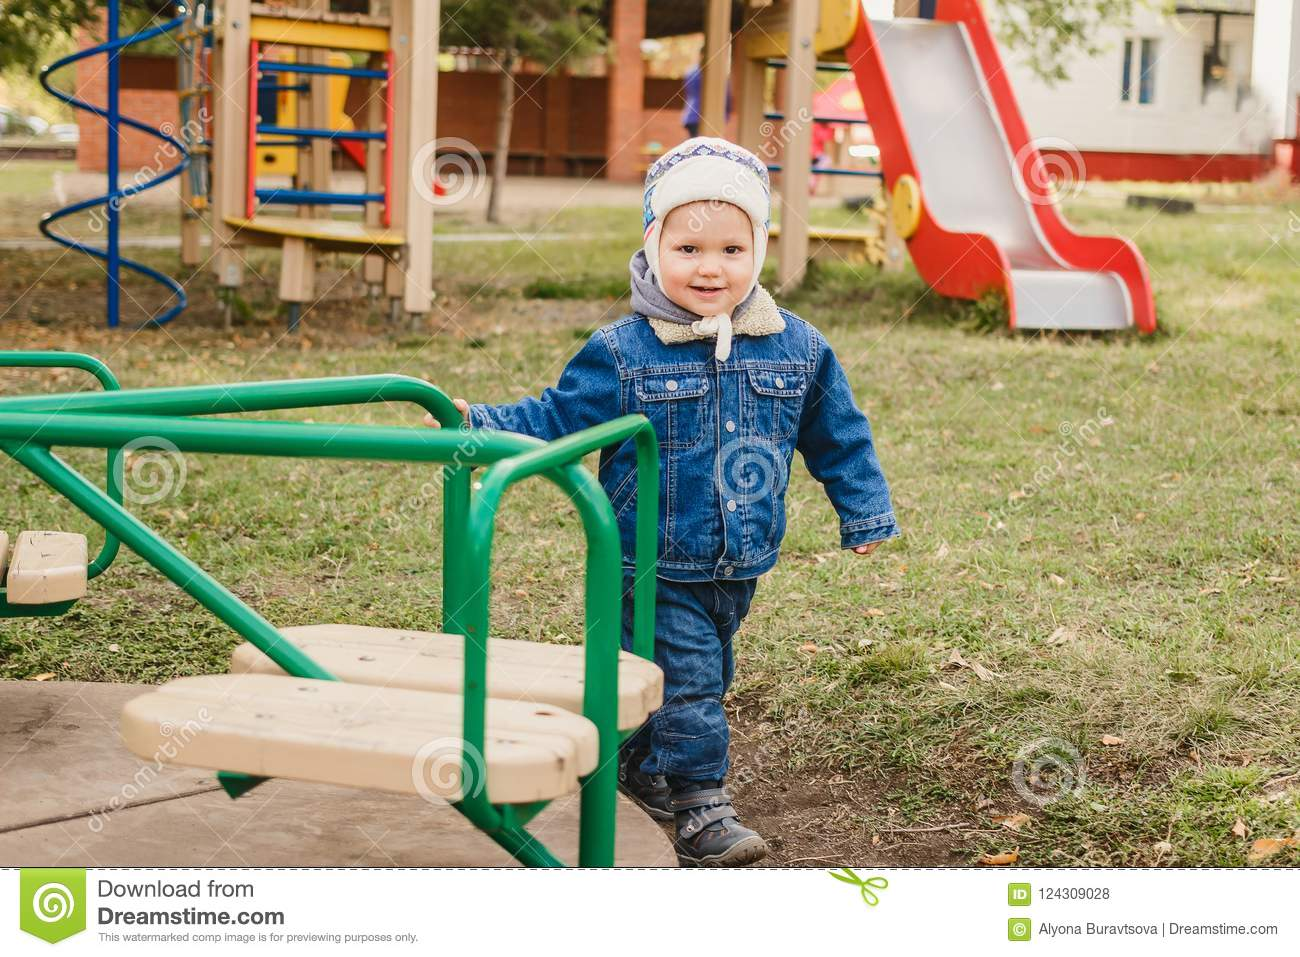 d652ff1b1 Little kid in jeans suit plays on the playground, happy boy spinning on the  carousel. More similar stock images